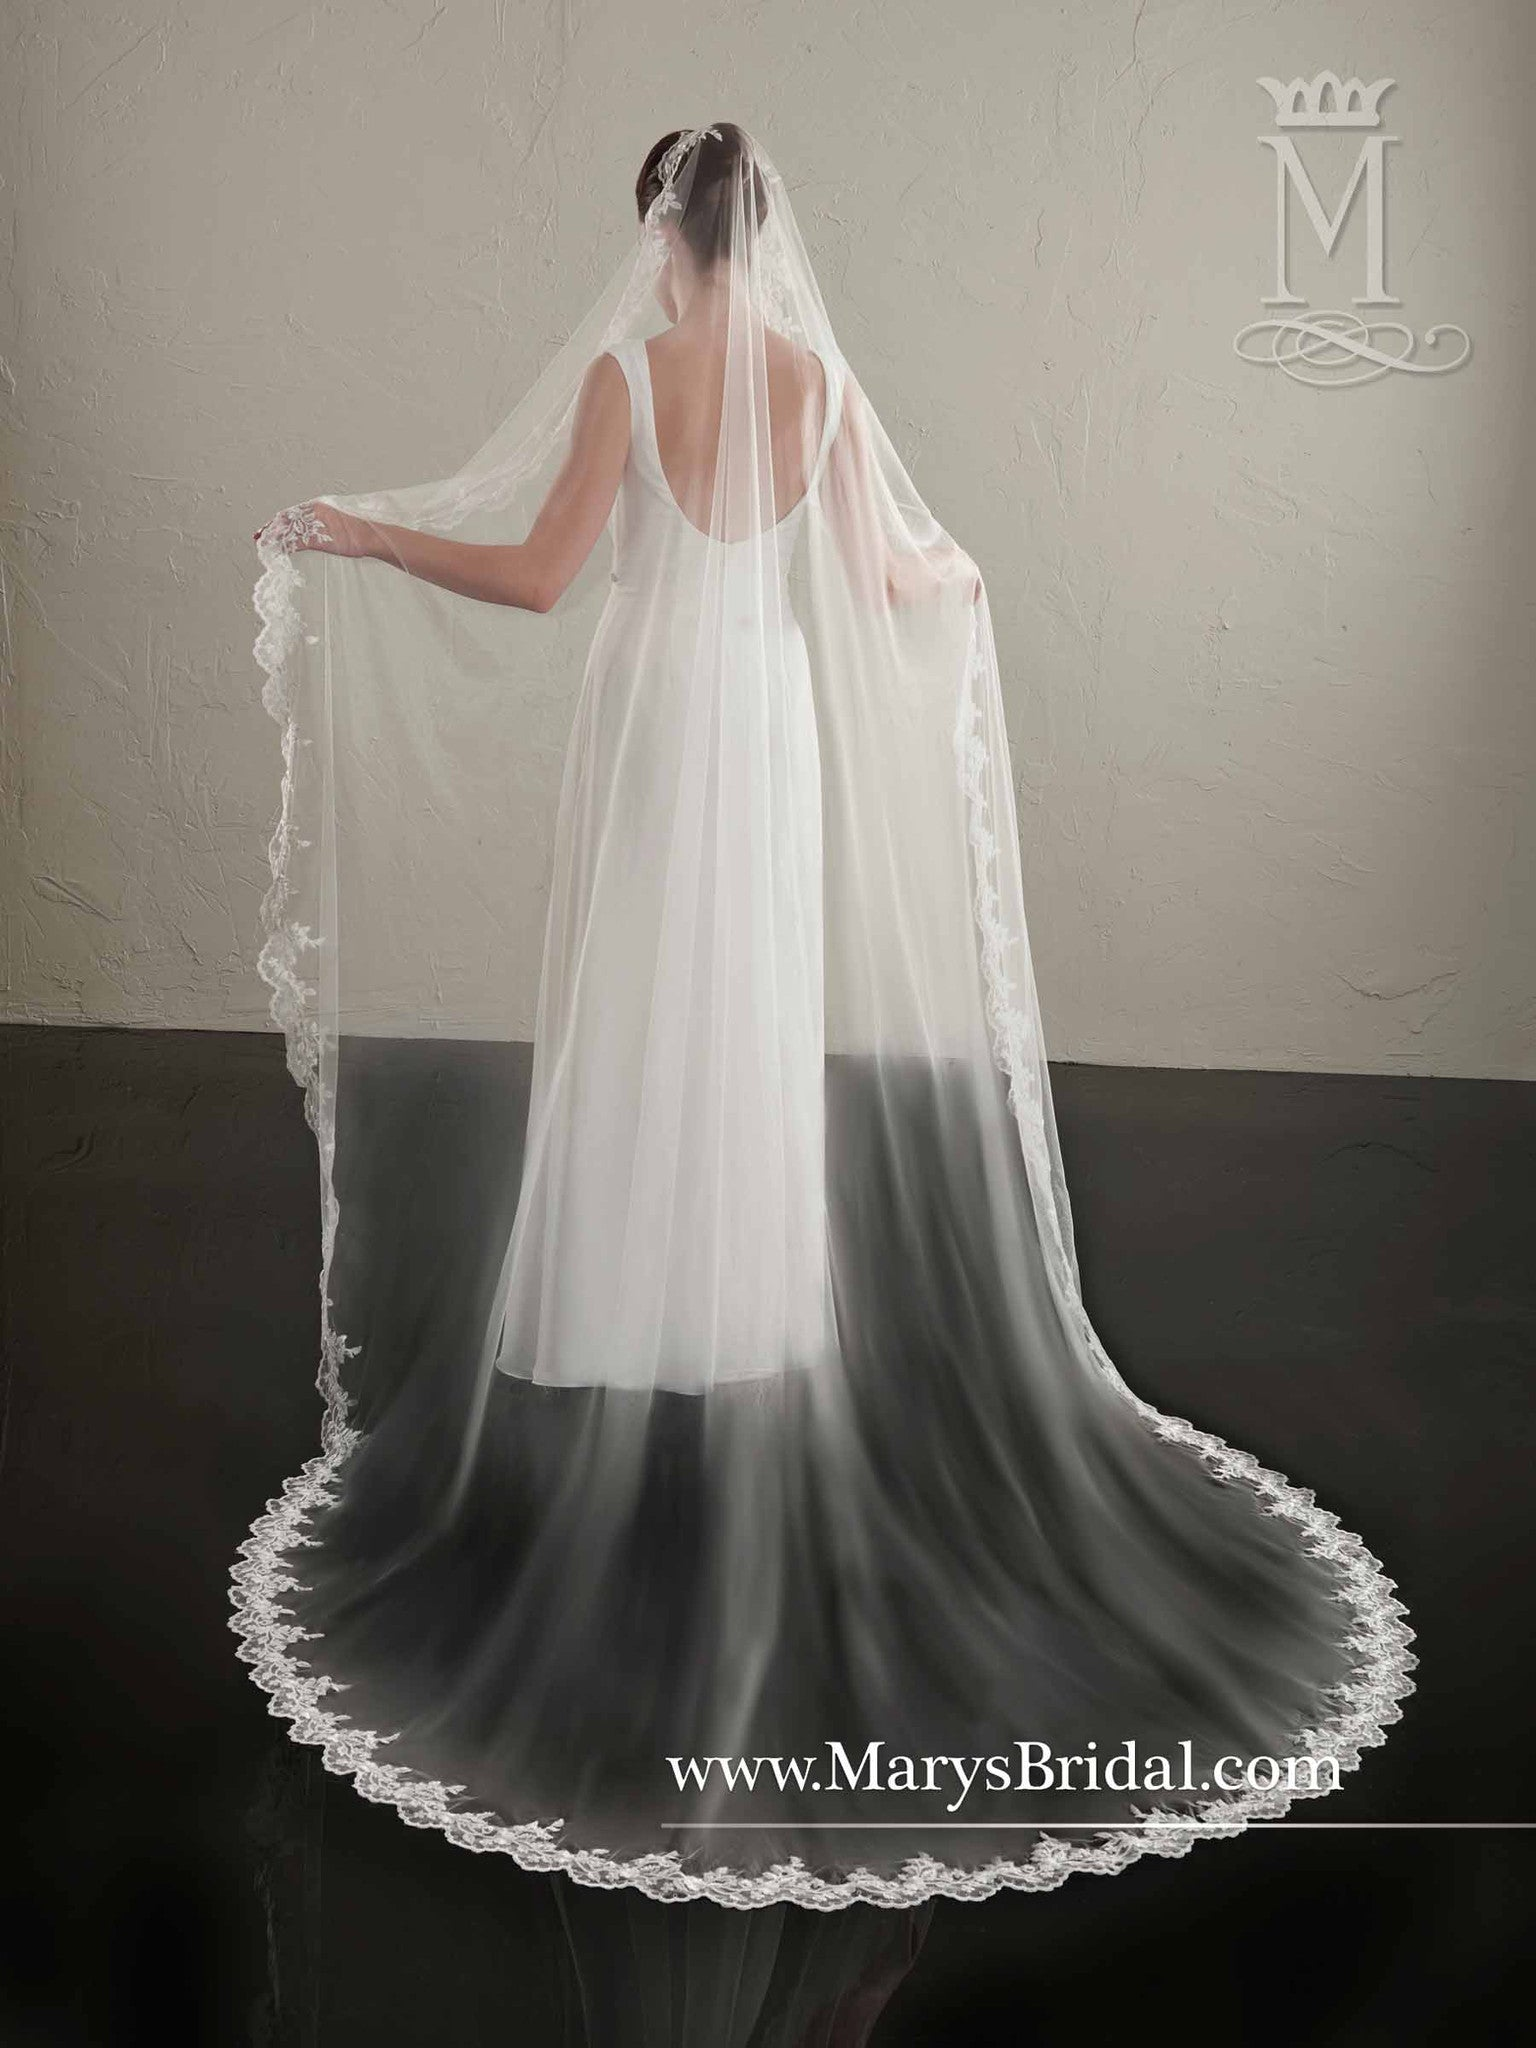 "Lace 120"" Long Veil - Concepcion Bridal & Quinceañera Boutique"